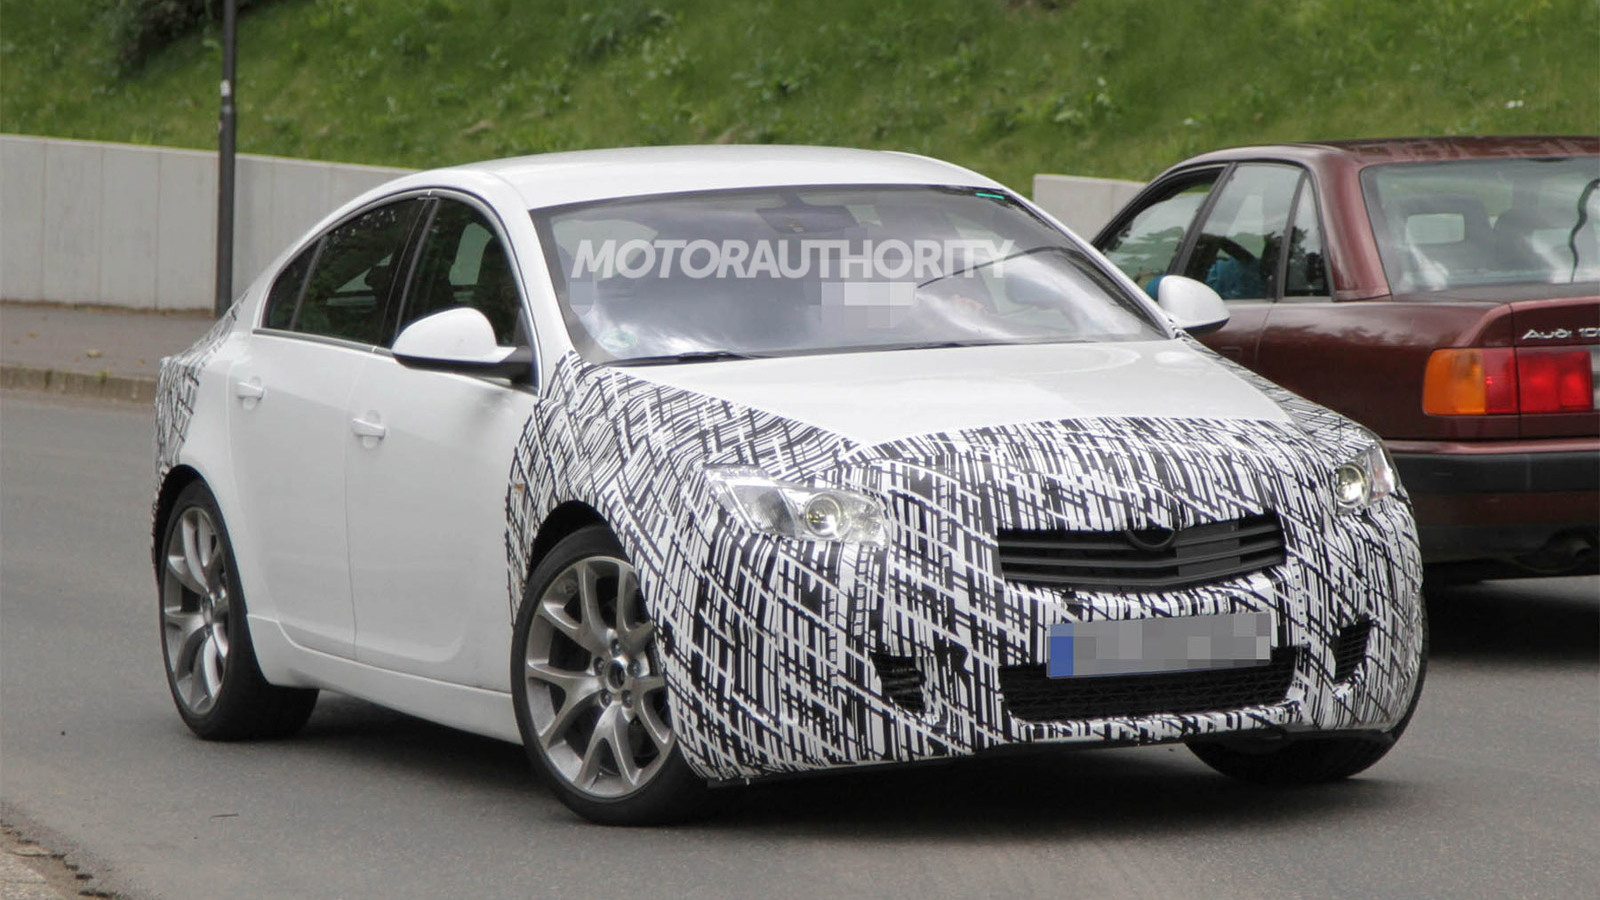 2014 Buick Regal GS facelift spy shots